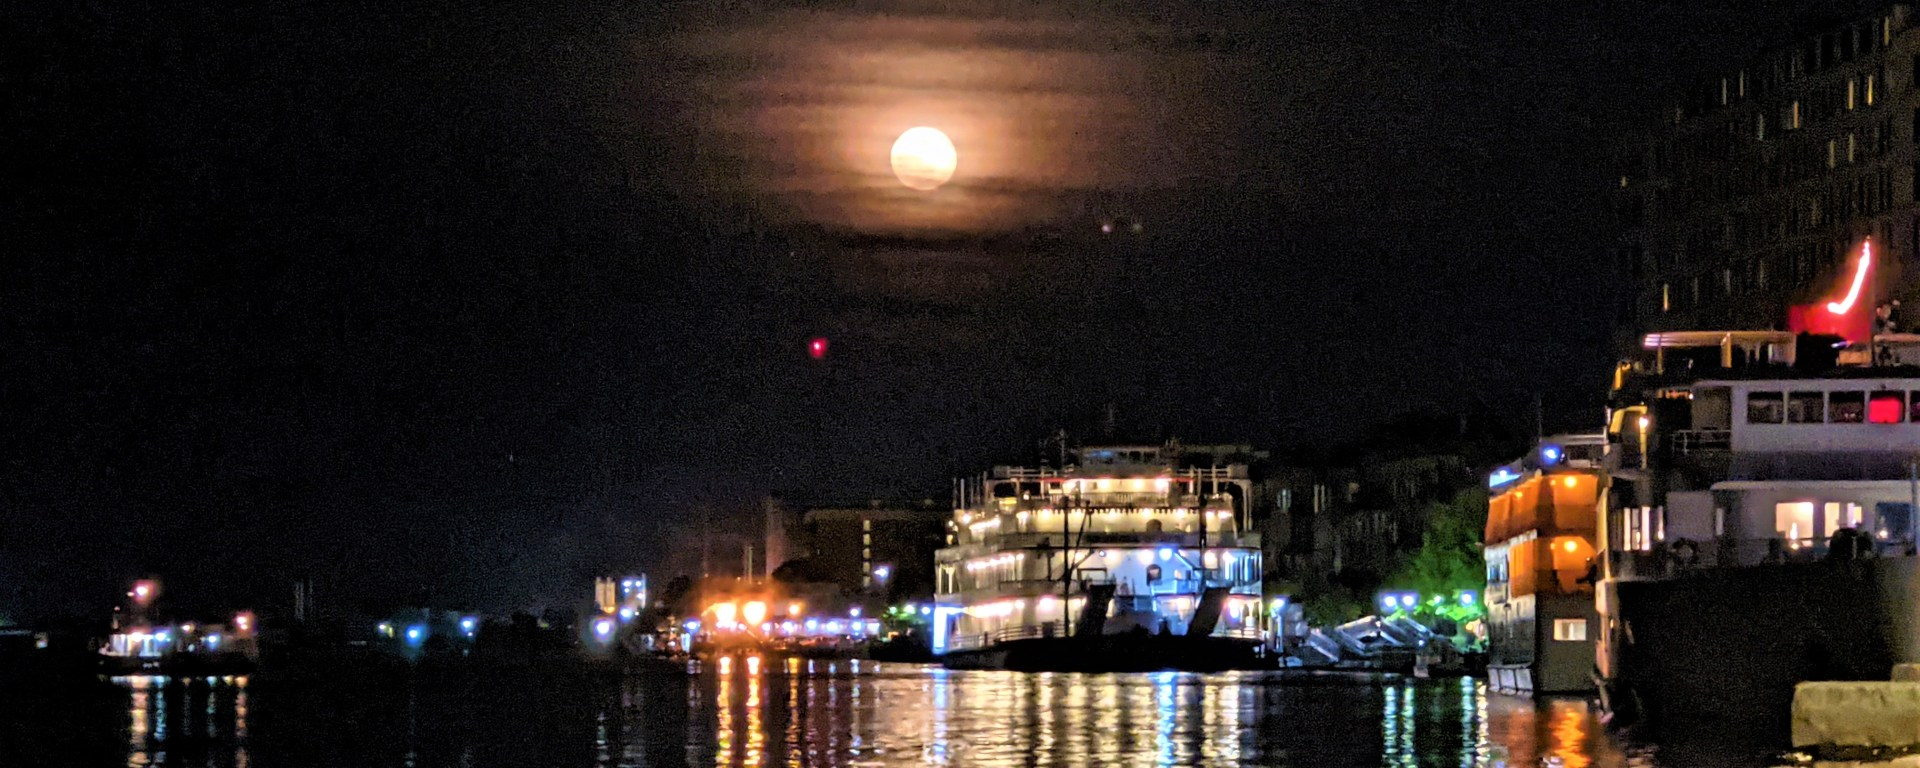 Supermoon over Savannah River with river boat in the foreground.